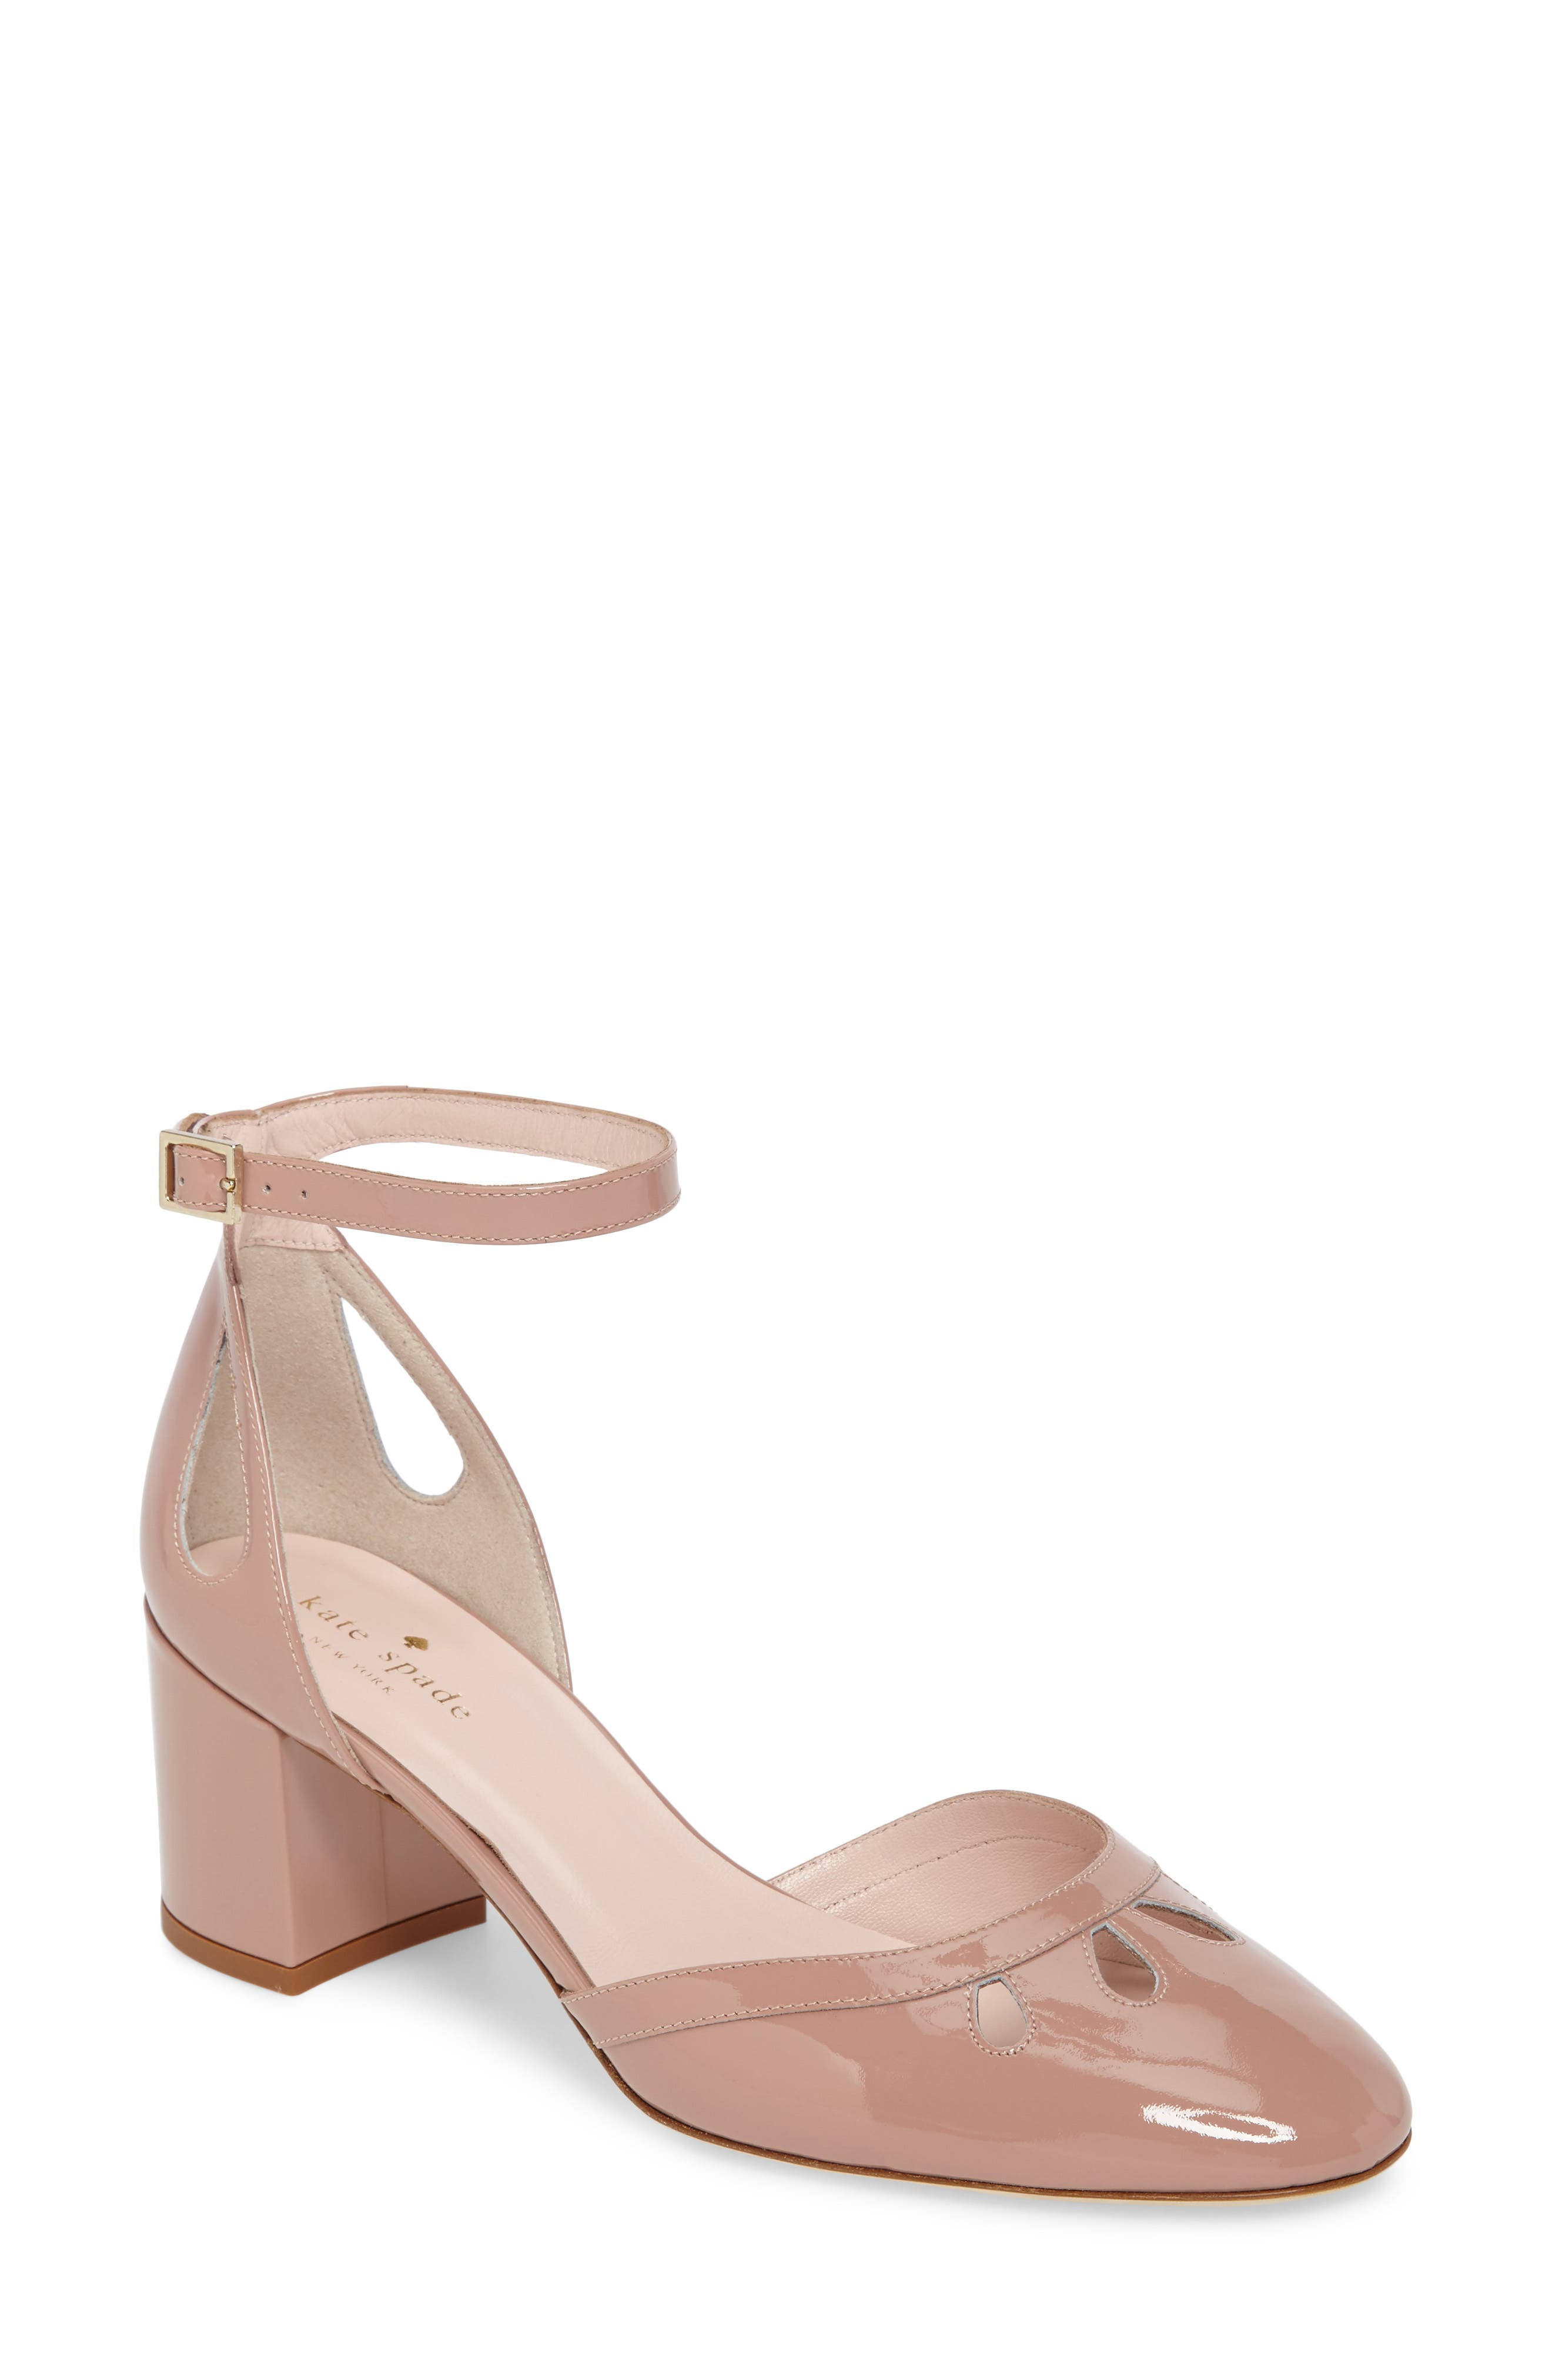 kate spade new york gibson pump (Women)